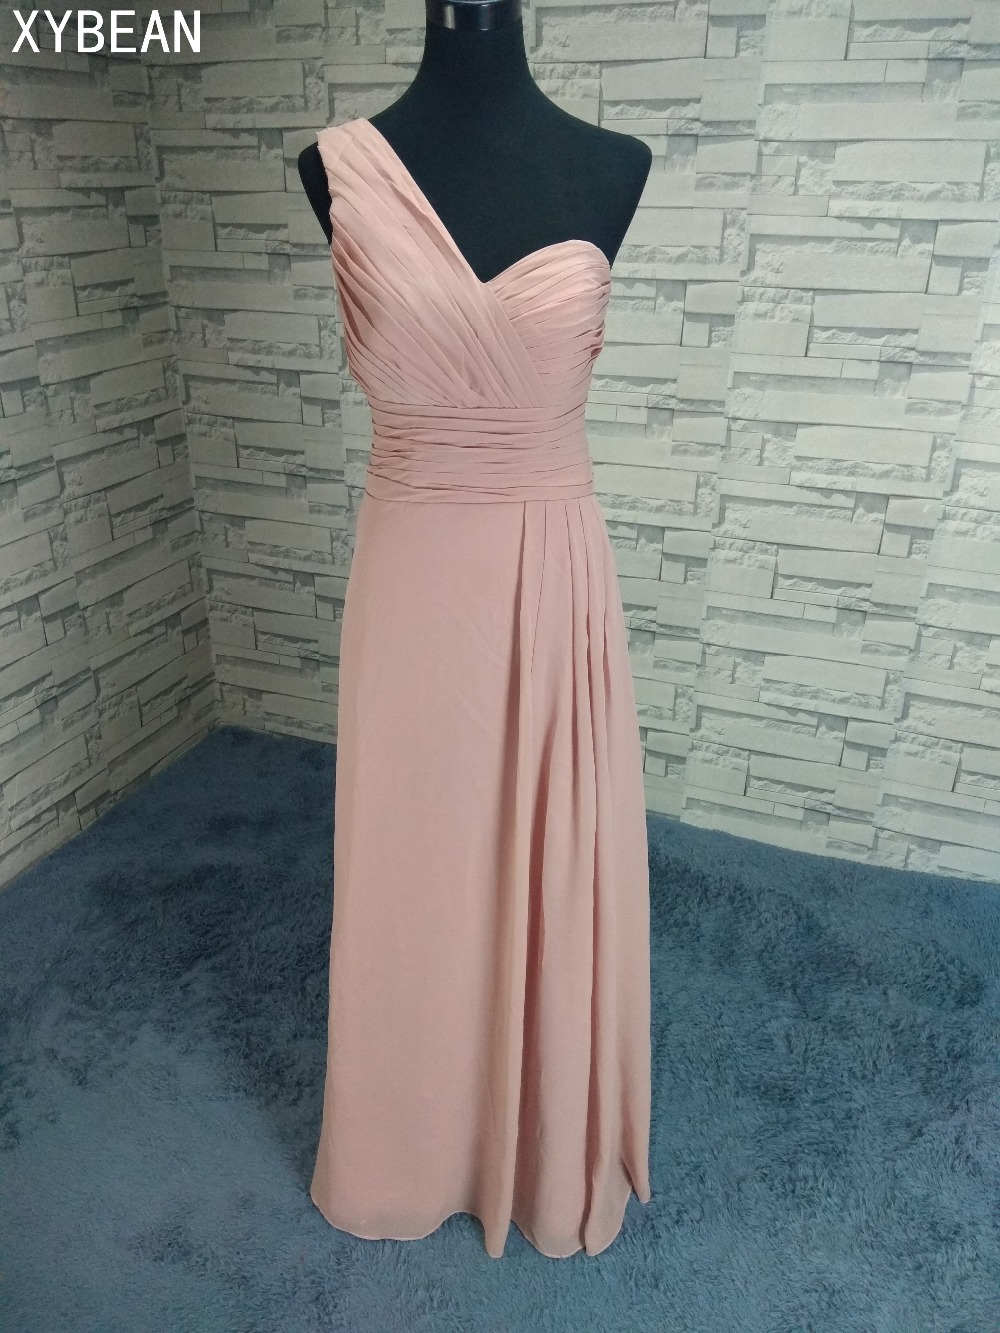 2018 New Arrival ! Free Shipping ! Cheap Price ! One-Shoulder Chiffon   Evening     Dresses